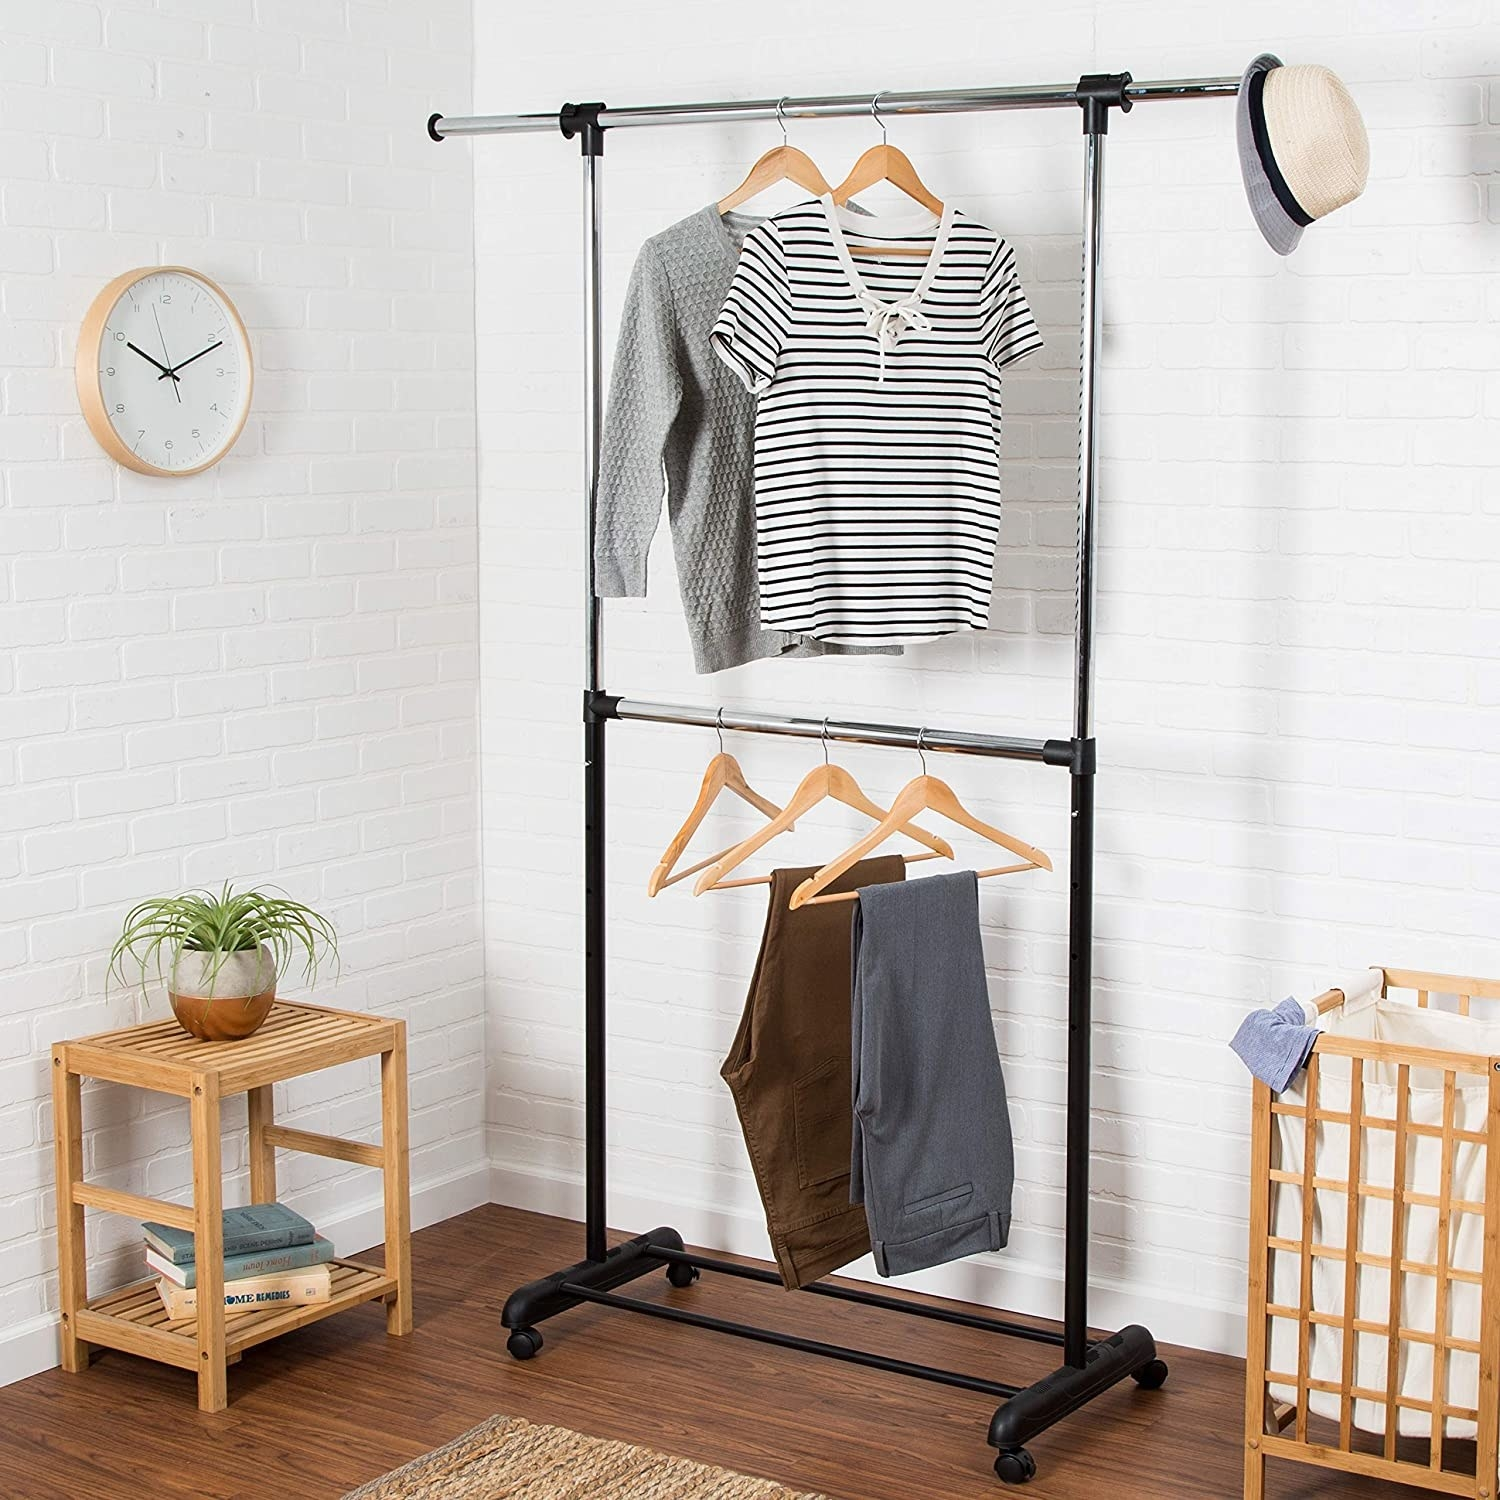 The garment rack containing two shirts and two pairs of pants in a neatly organized room